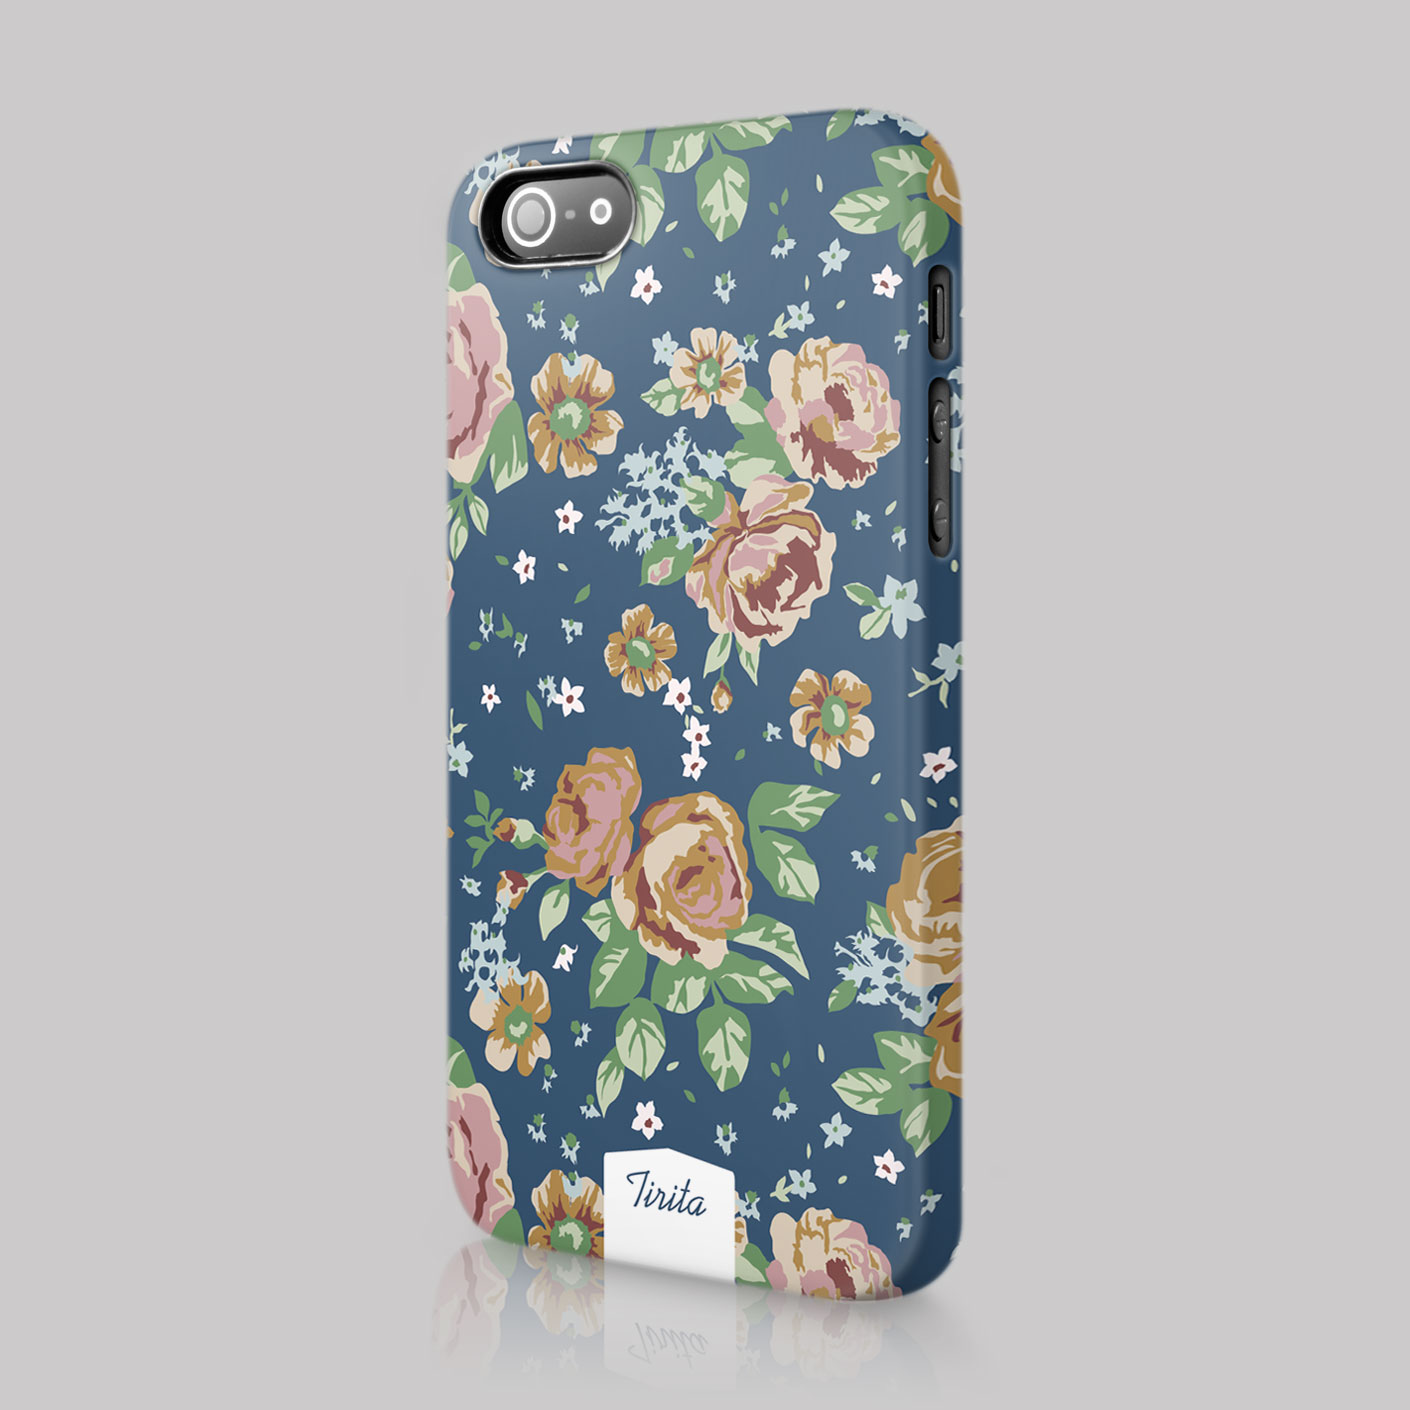 Tirita shabby chic vintage cute floral case hard cover for for Grove iphone 4 case